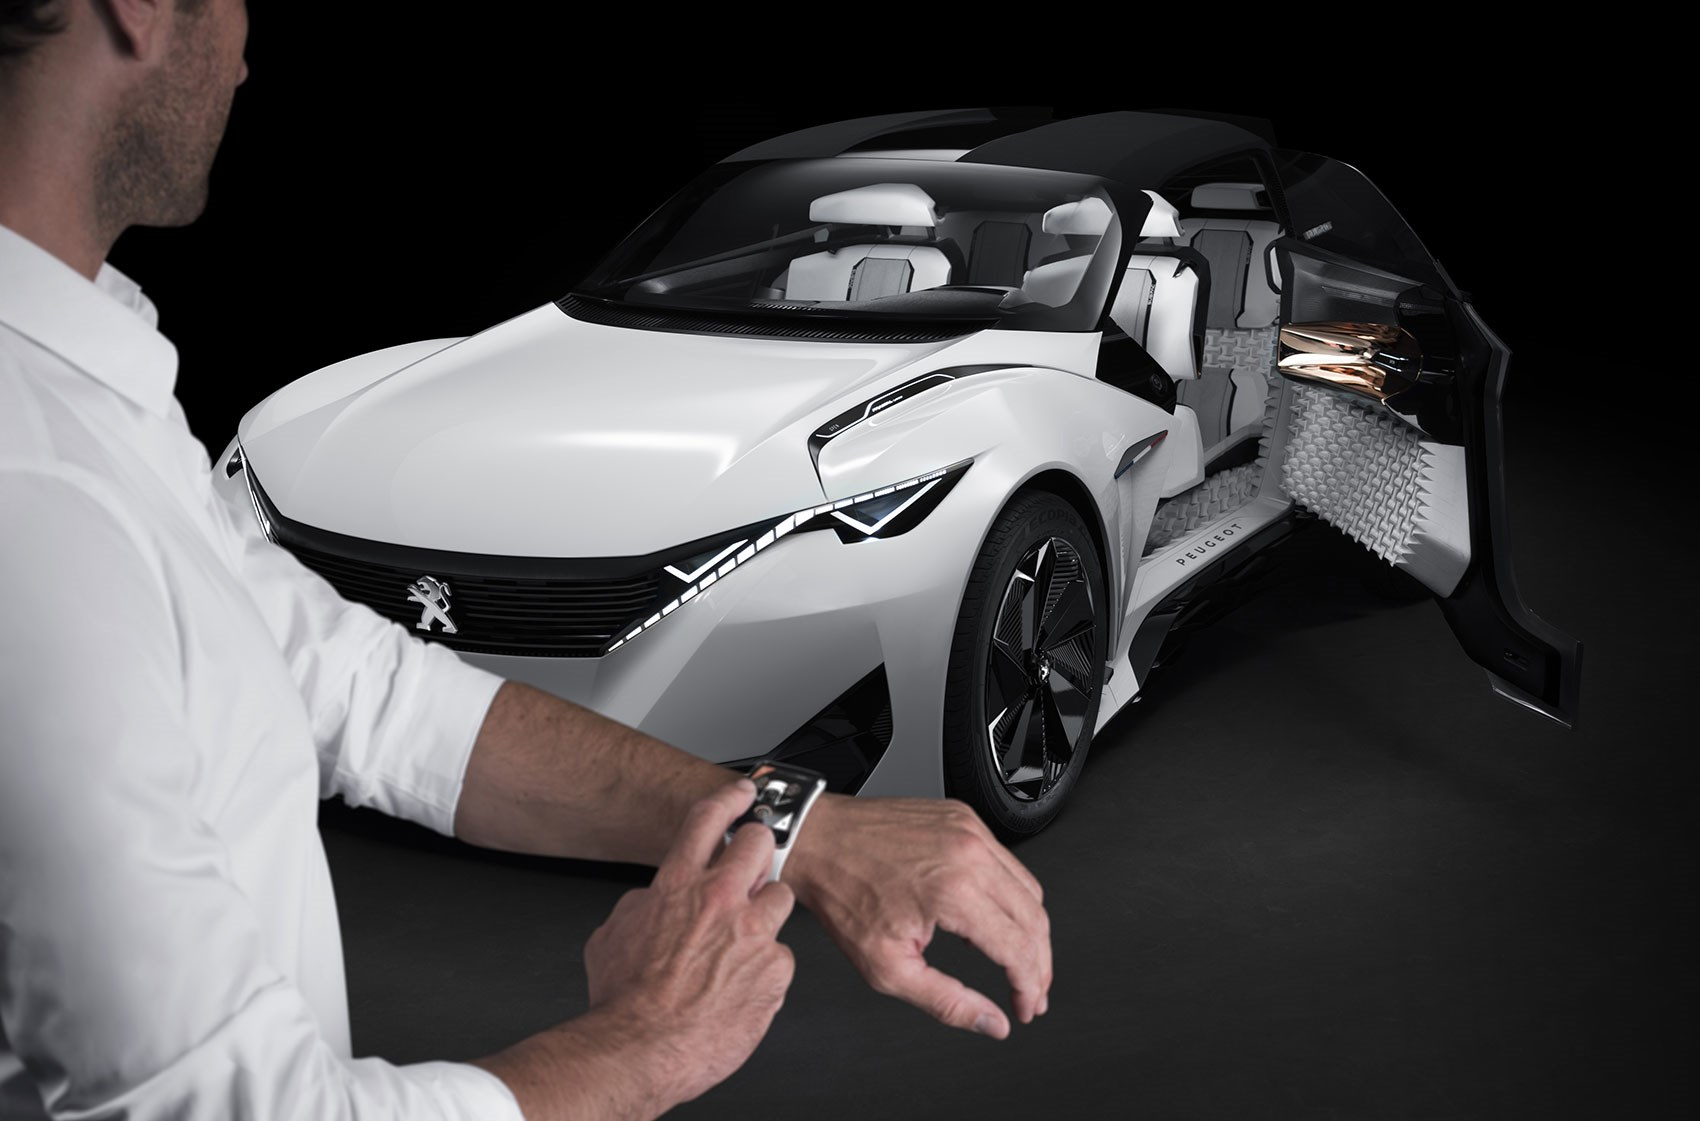 peugeot fractal concept: an angry looking 'urban coupe'car